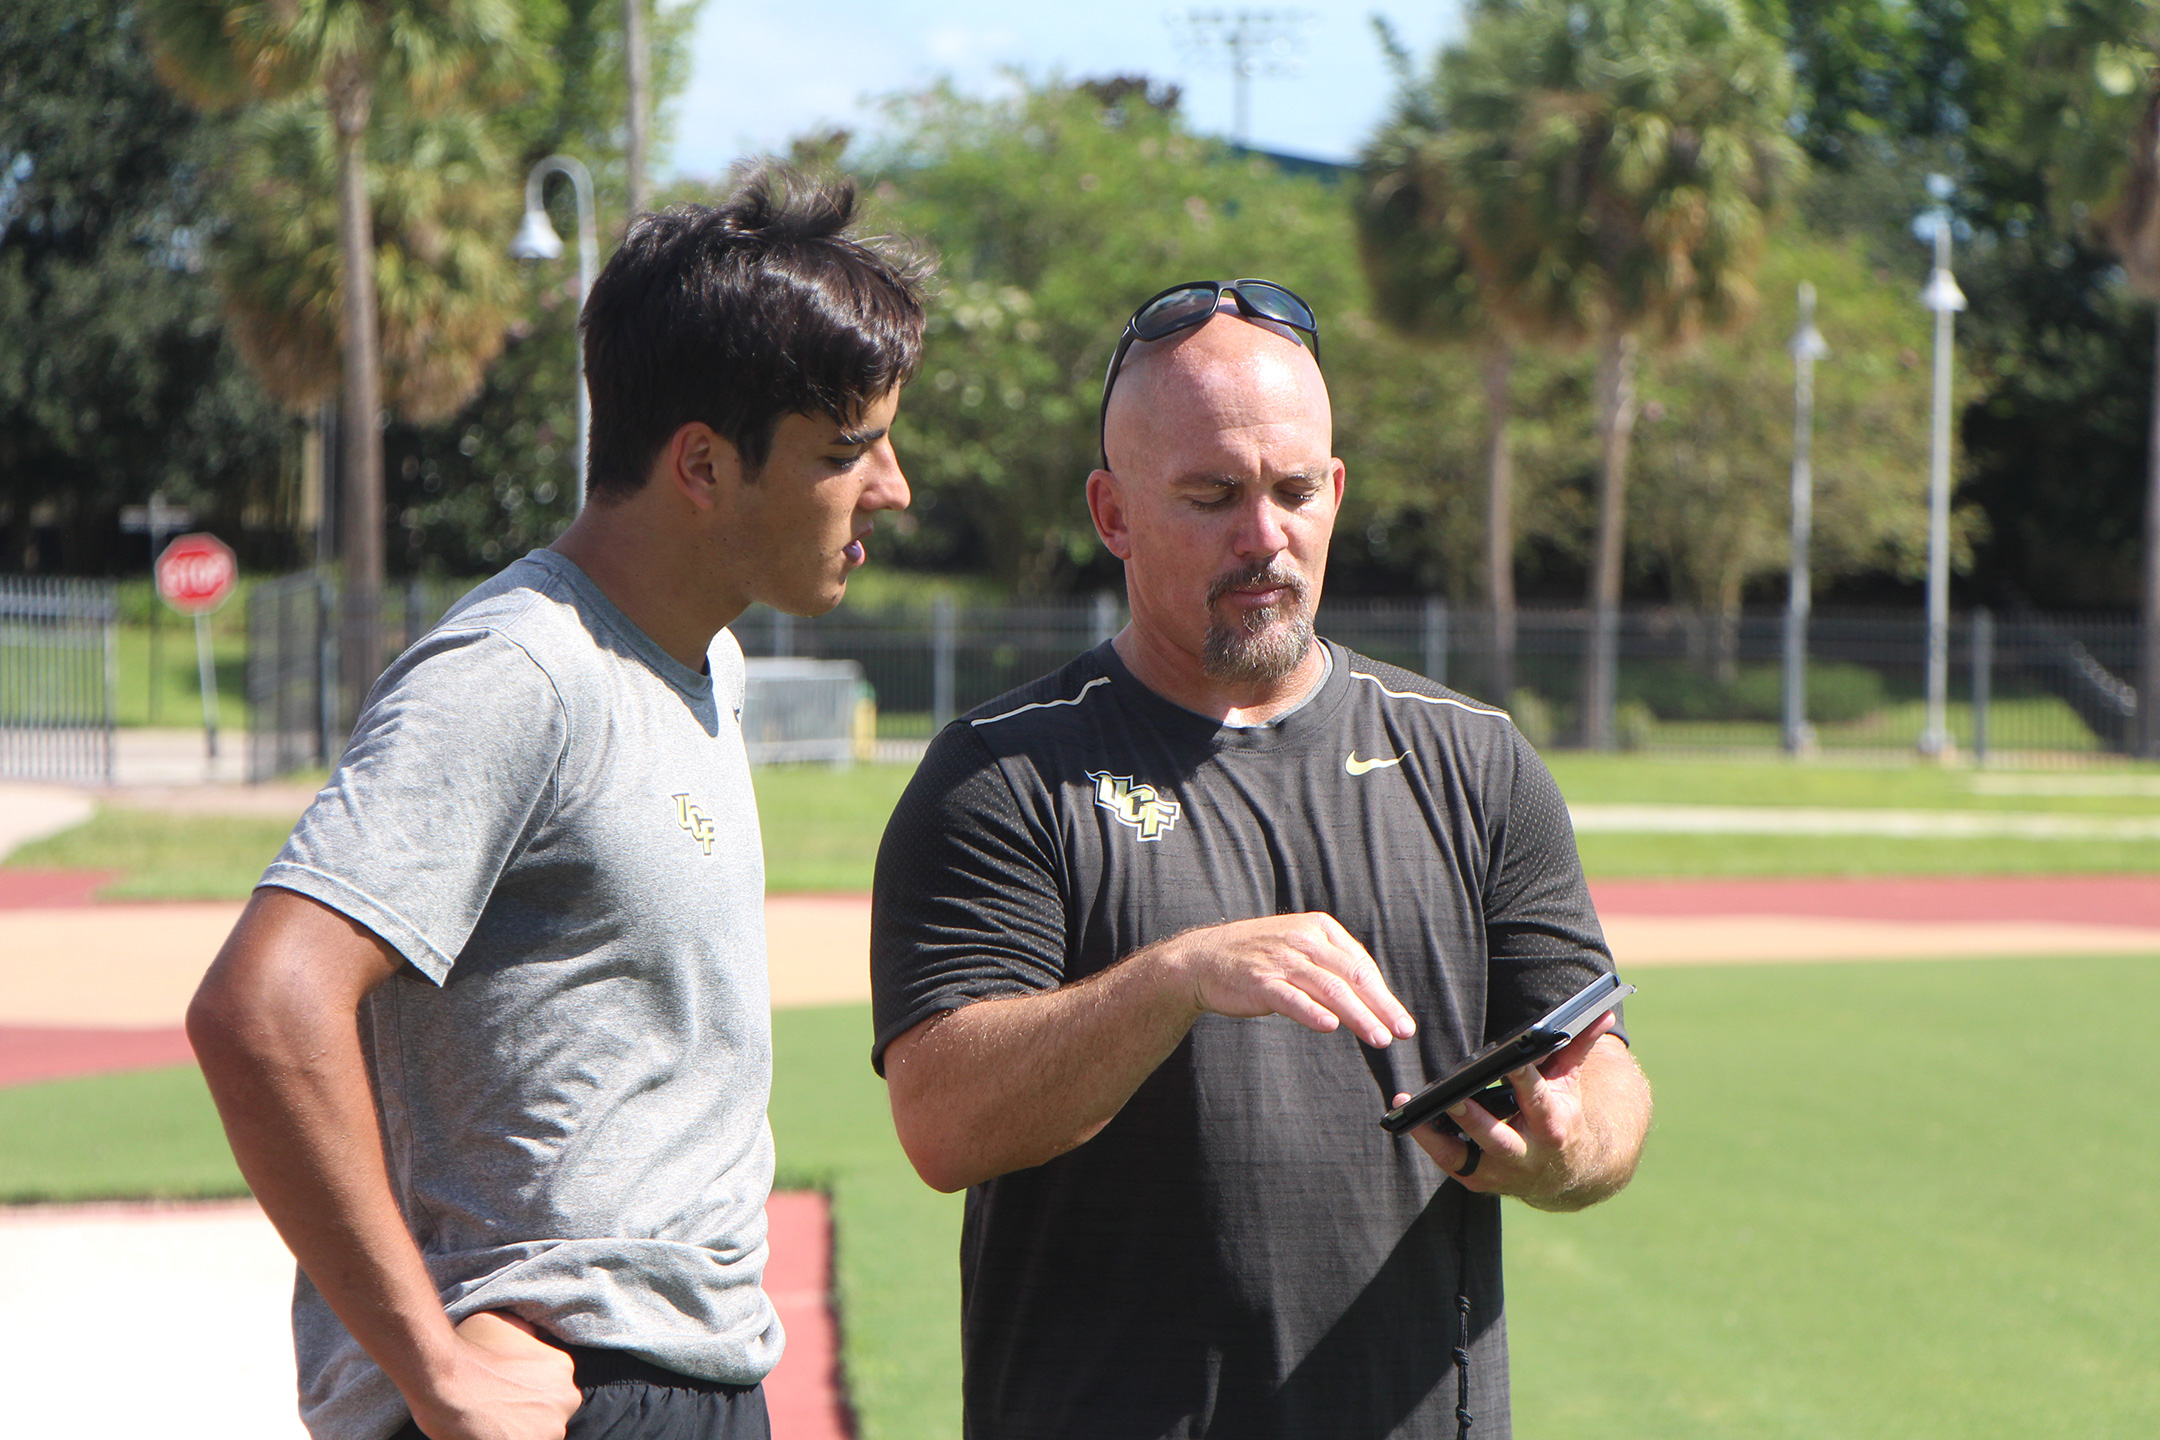 UCF Athletics, Kinesiology Program Team Up for Student-Athletes' Well-Being